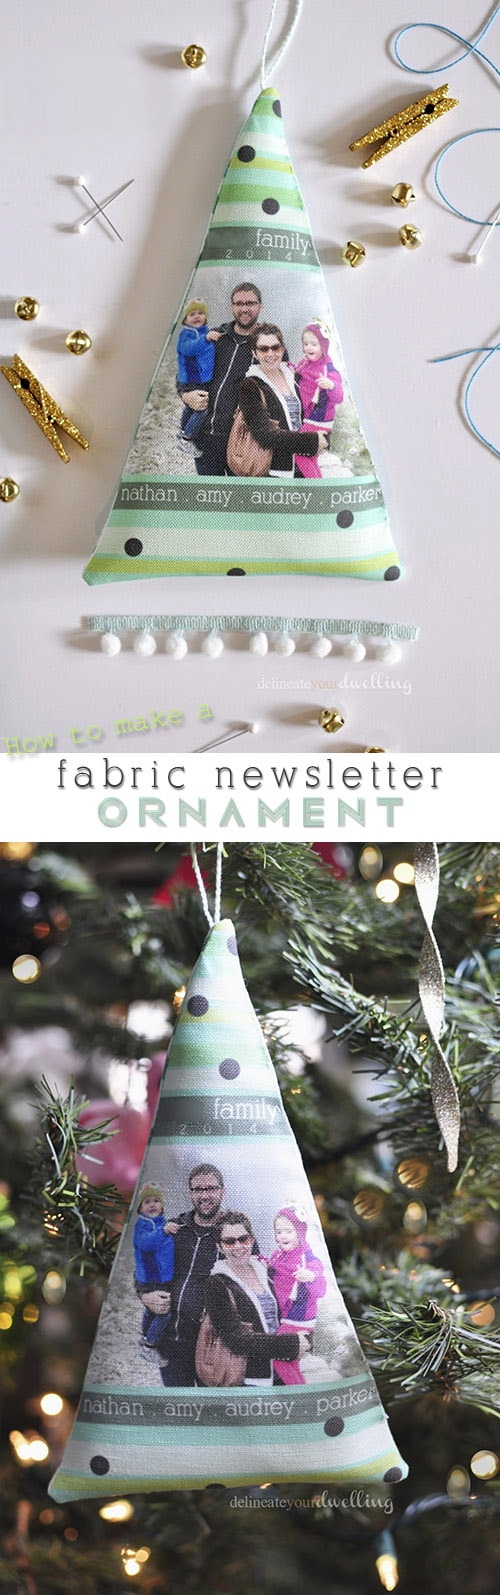 Fabric Newsletter Ornament done, Delineateyourdwelling.com